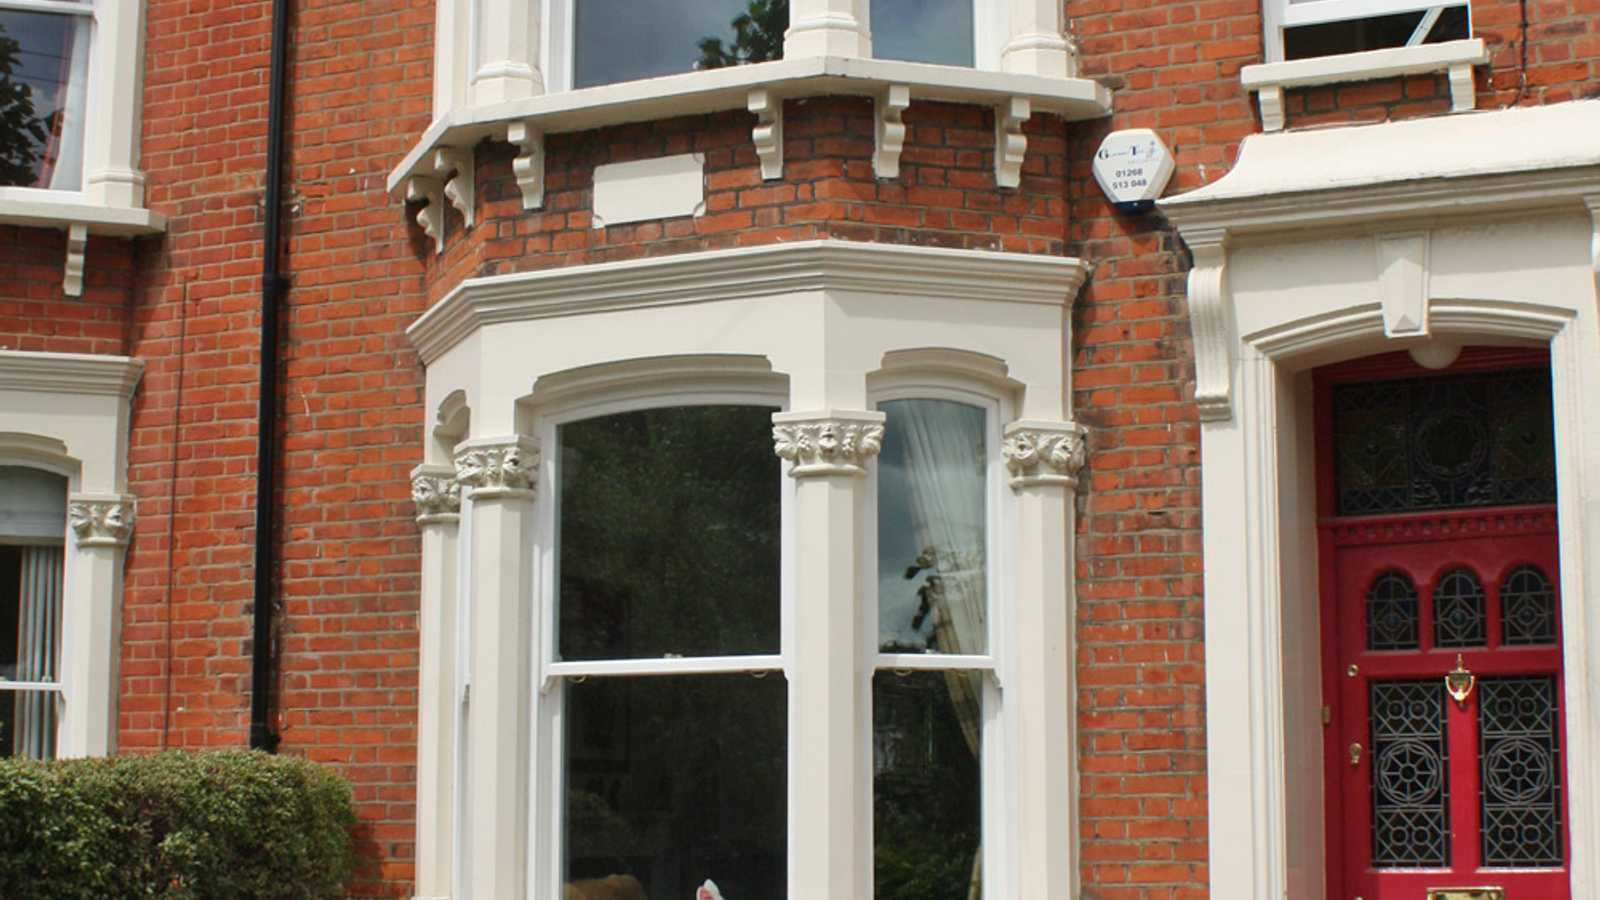 Victorian Home in East London available for filming/photography